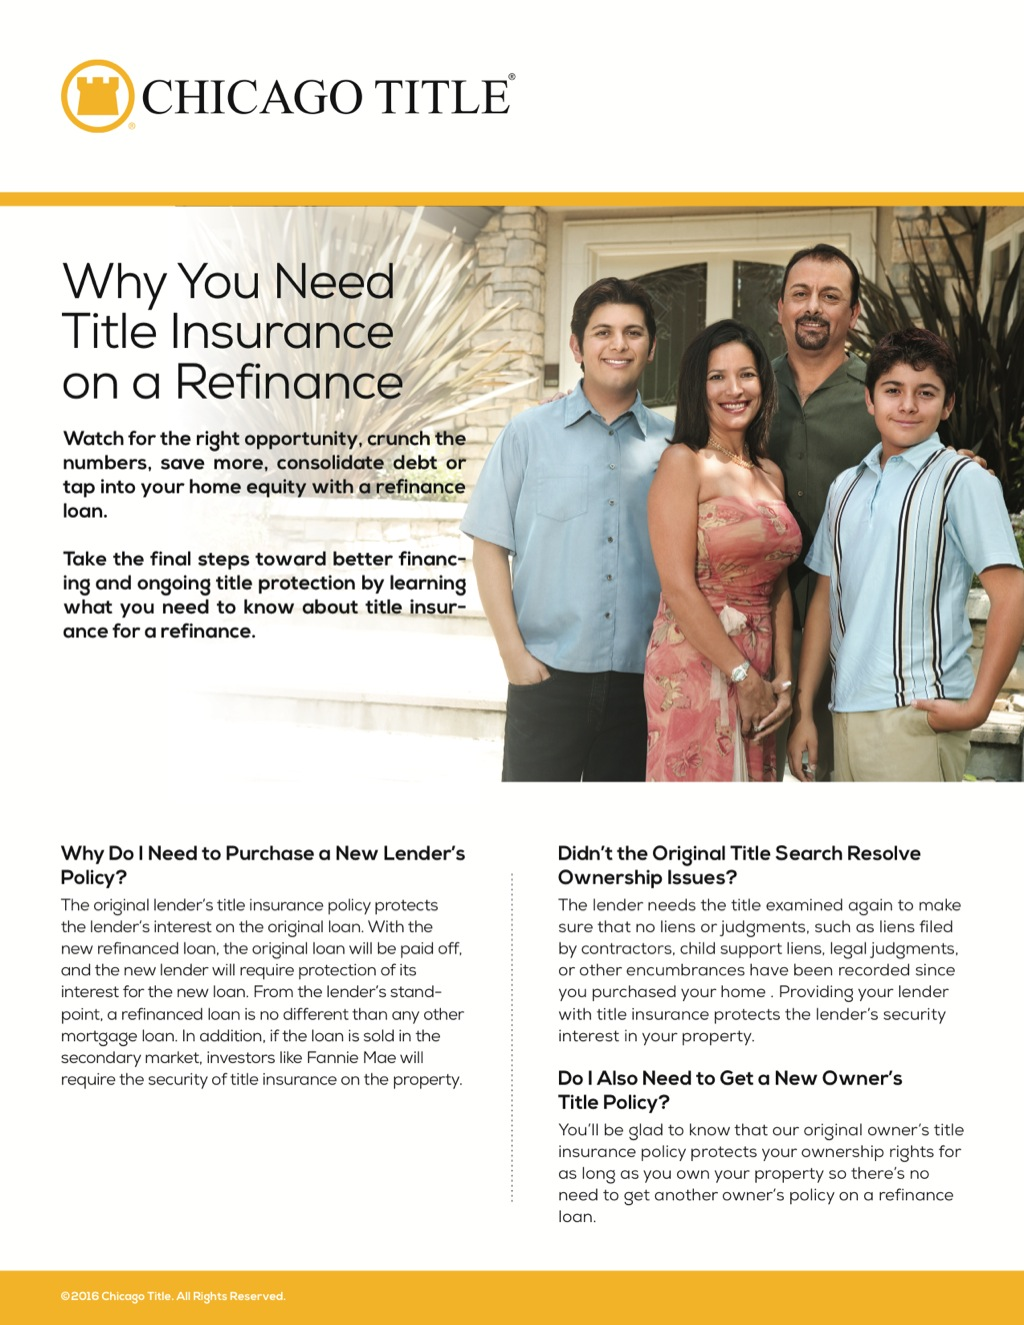 Corefact Why You Need Title Insurance on a Refinance - CTT